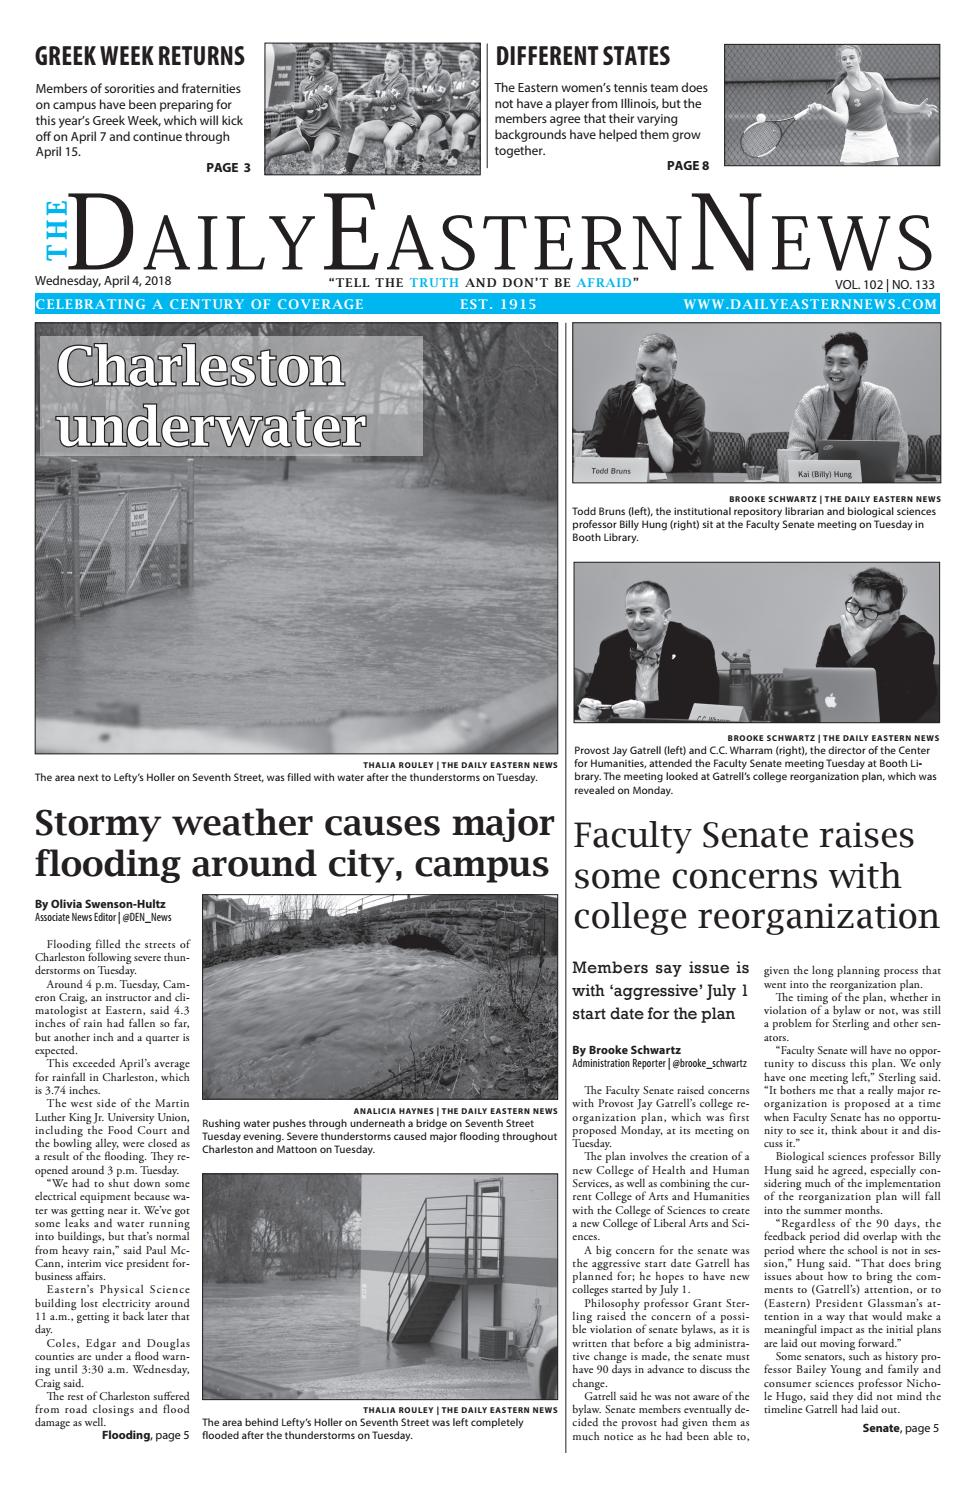 2018 04 04 by The Daily Eastern News - issuu